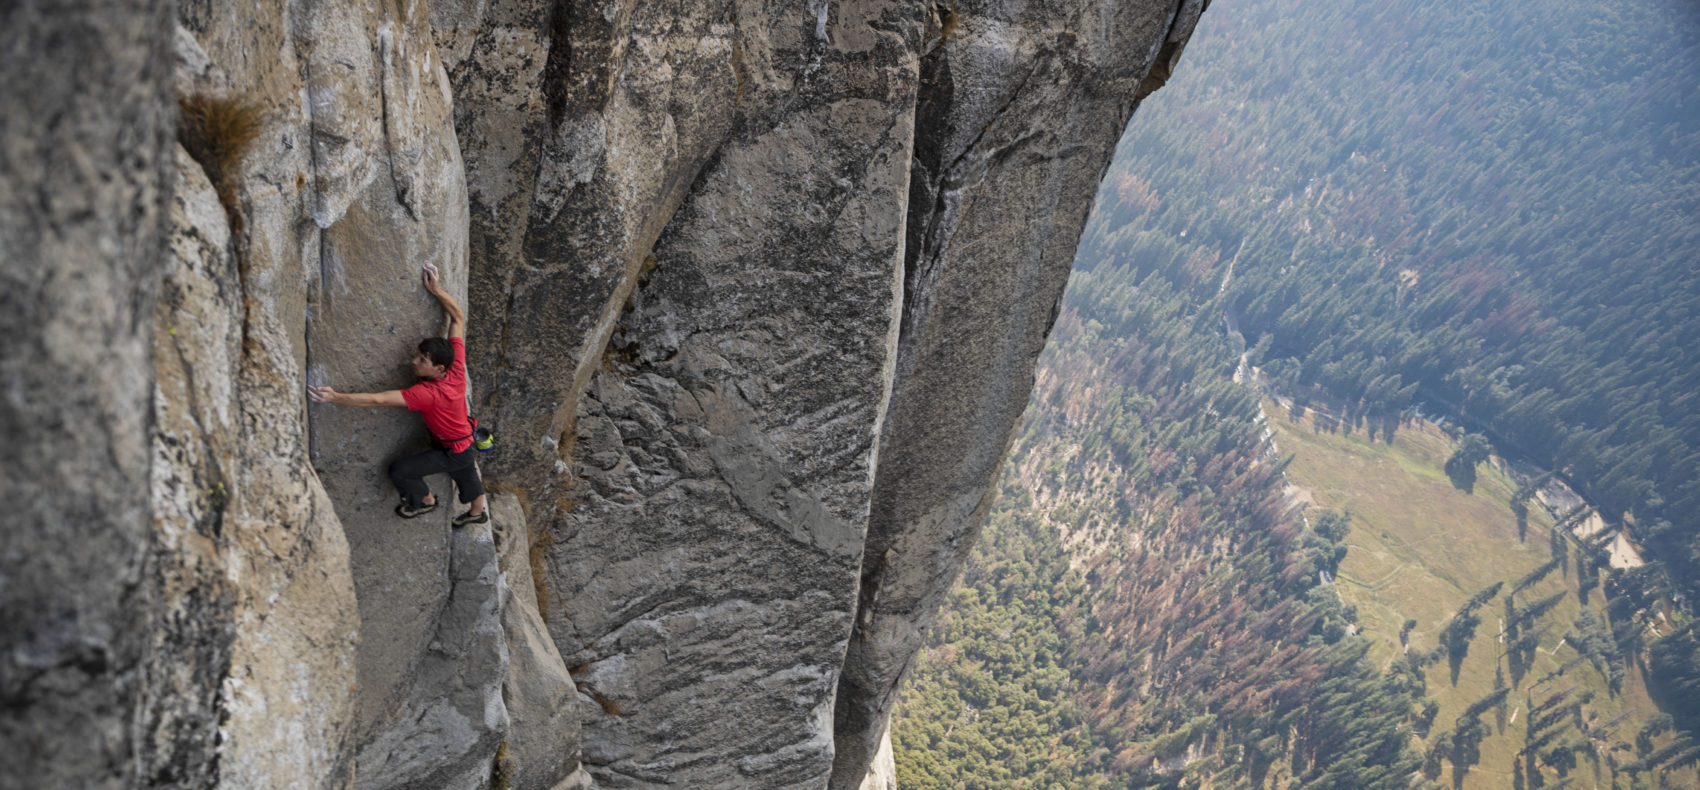 Alex Honnold free-solo climbs El Capitan's Freerider in Yosemite National Park. (Jimmy Chin/Courtesy of National Geographic)